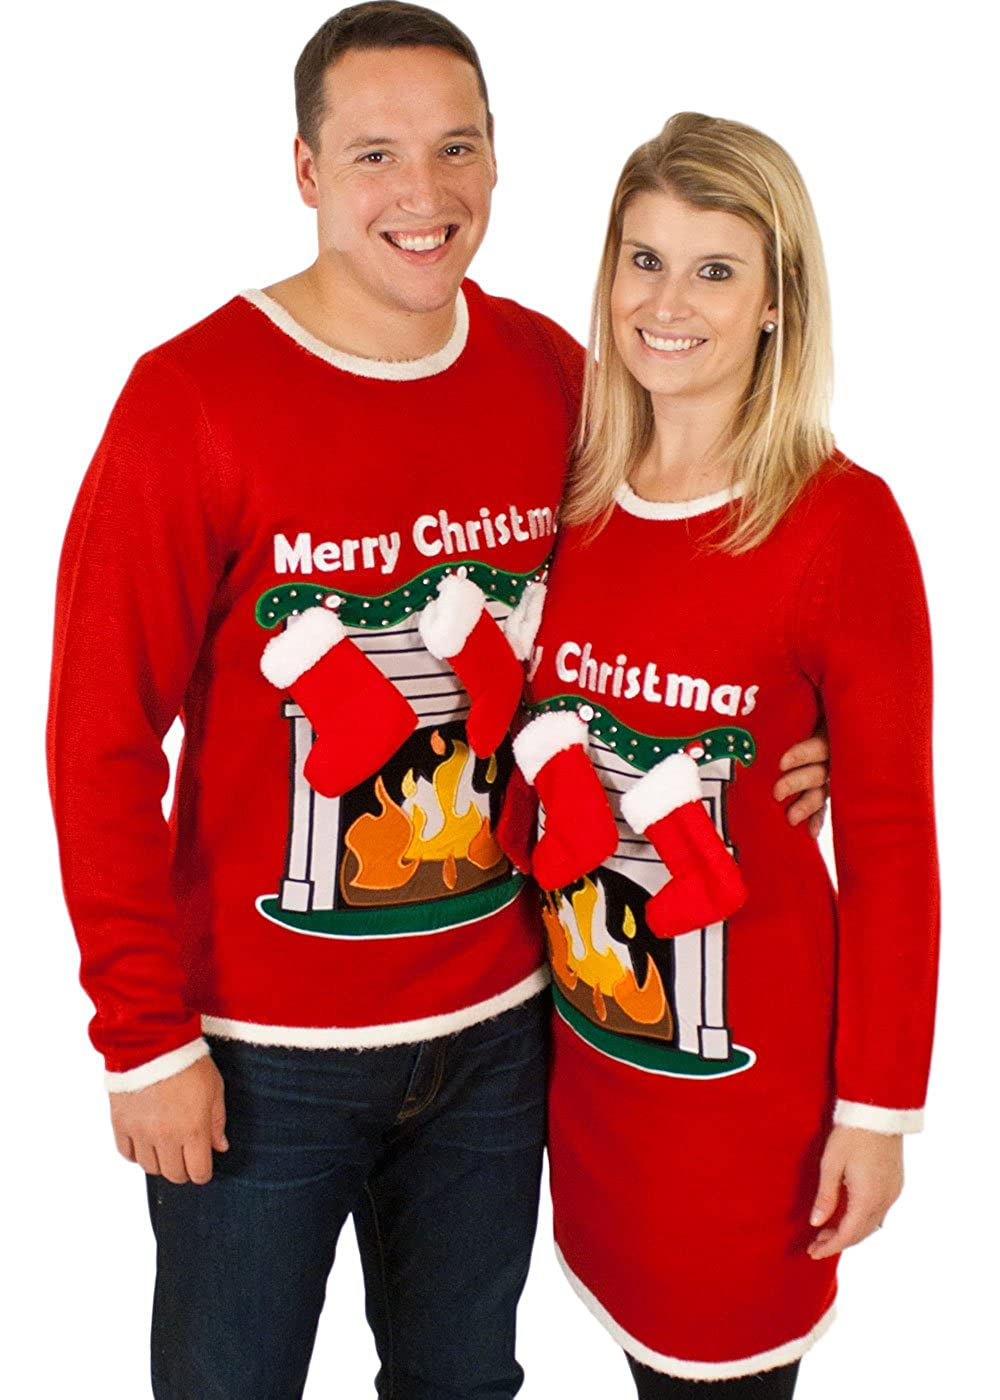 Amazon.com: Ugly Christmas Sweater - Lighted LED Fireplace Sweater ...